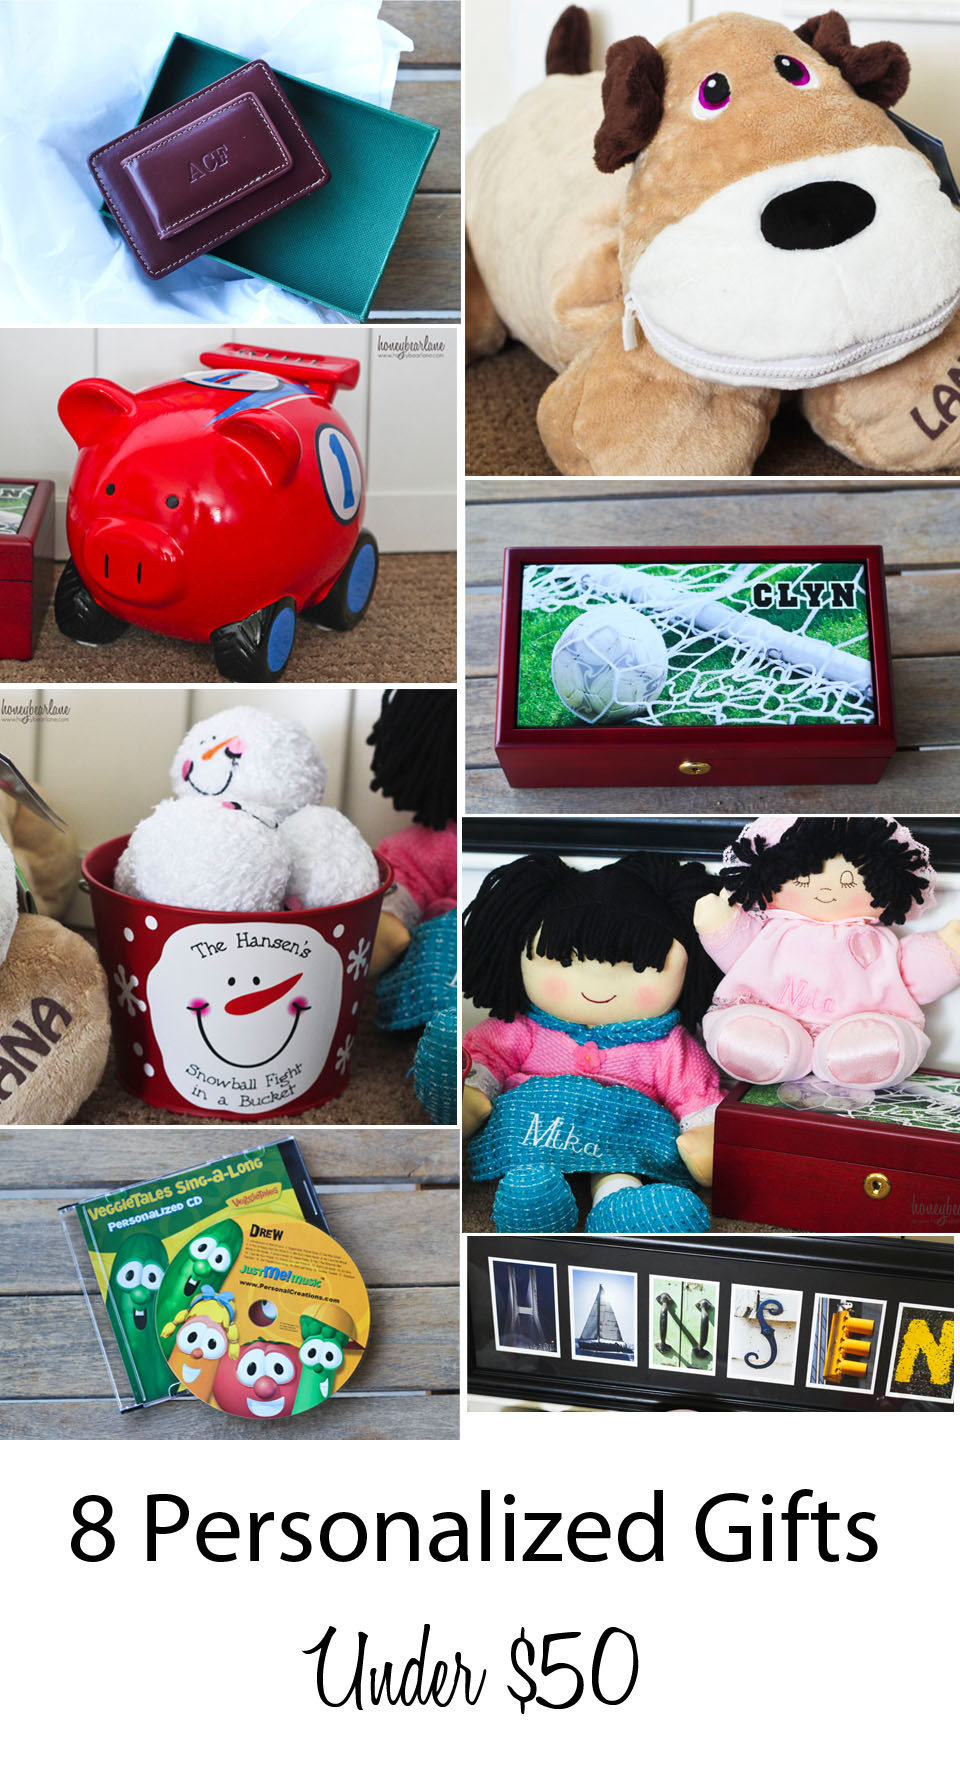 Best ideas about Gift Ideas Under 50 . Save or Pin 8 Personalized Gift Ideas Under $50 Honeybear Lane Now.